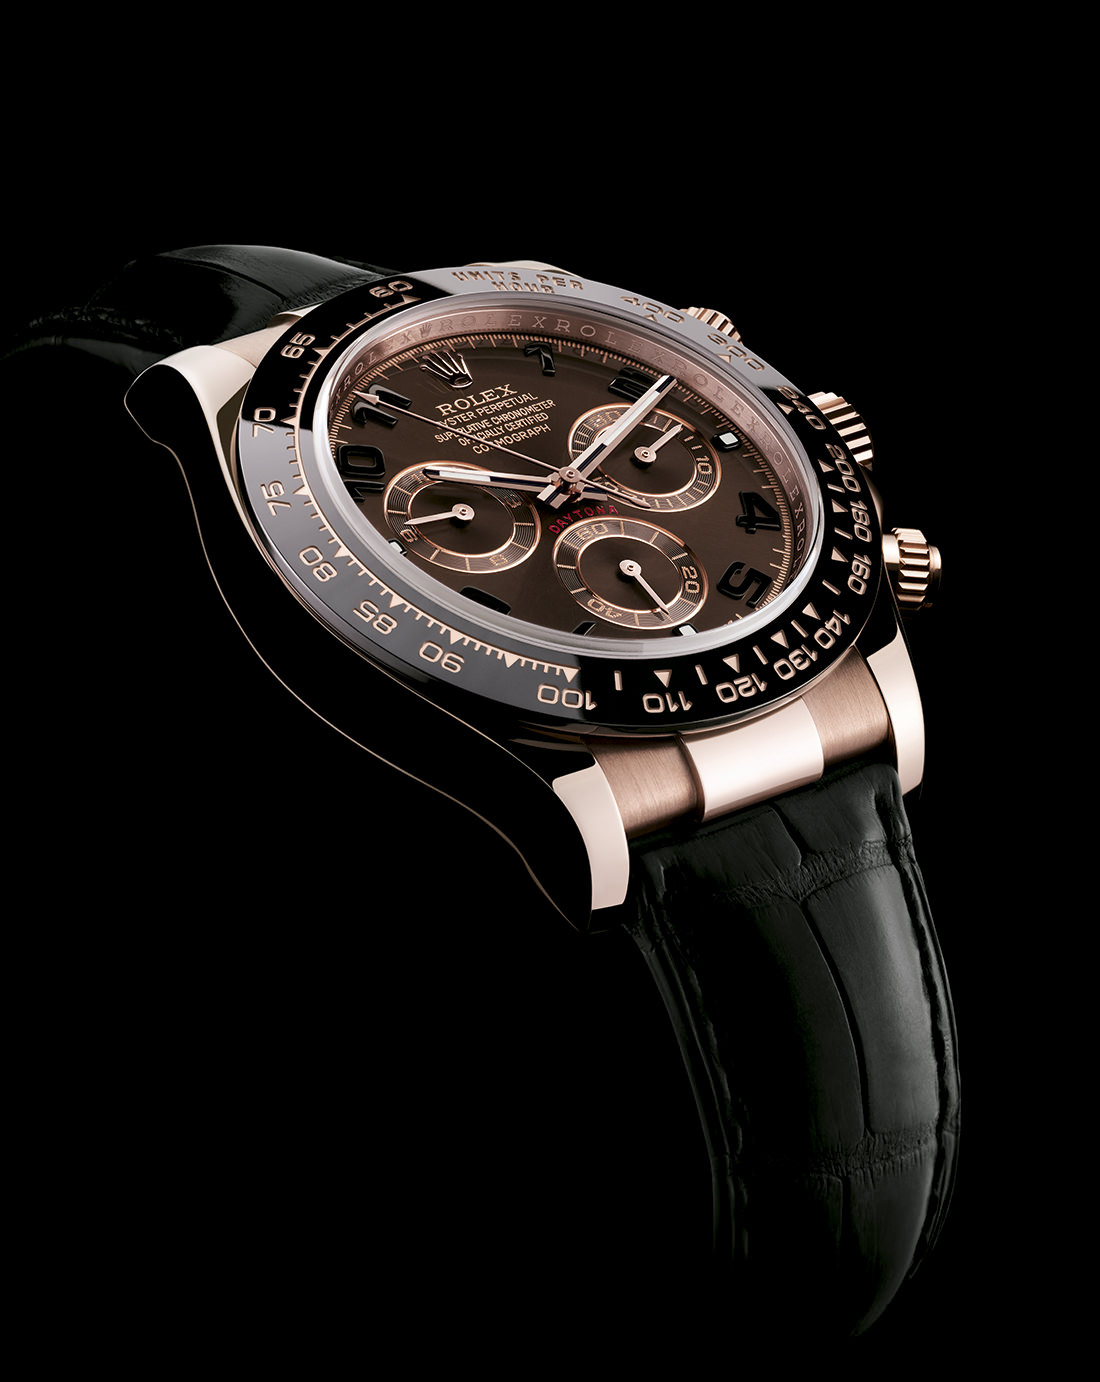 Rolex S Oyster Perpetual Cosmograph Daytona